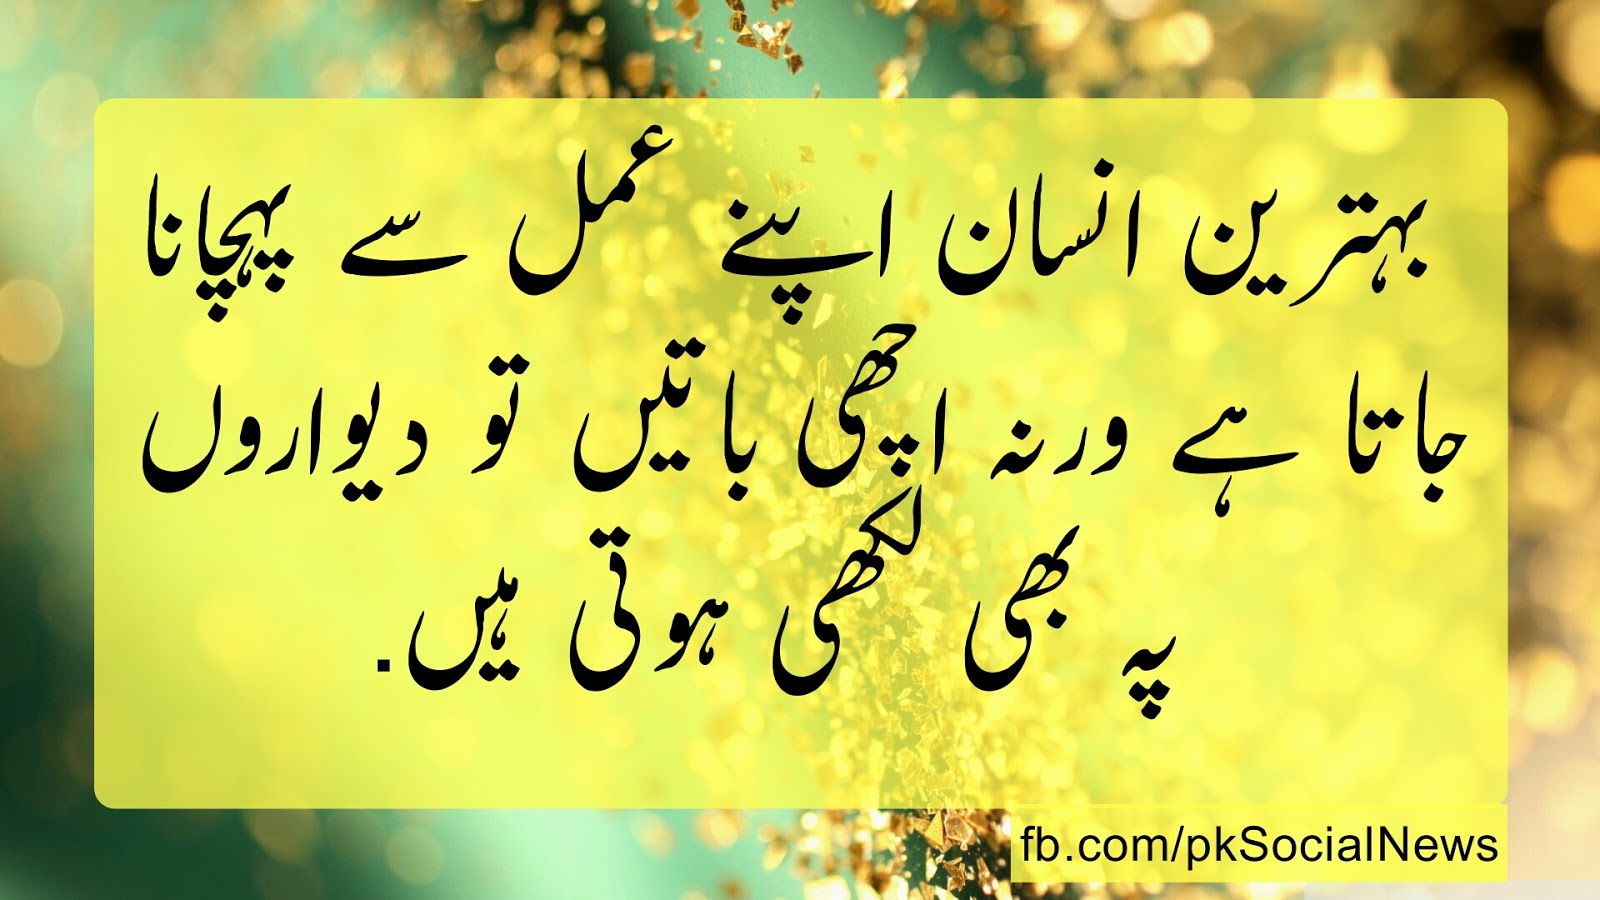 15 Urdu Quotes About Life In English | Inspiring Famous ...